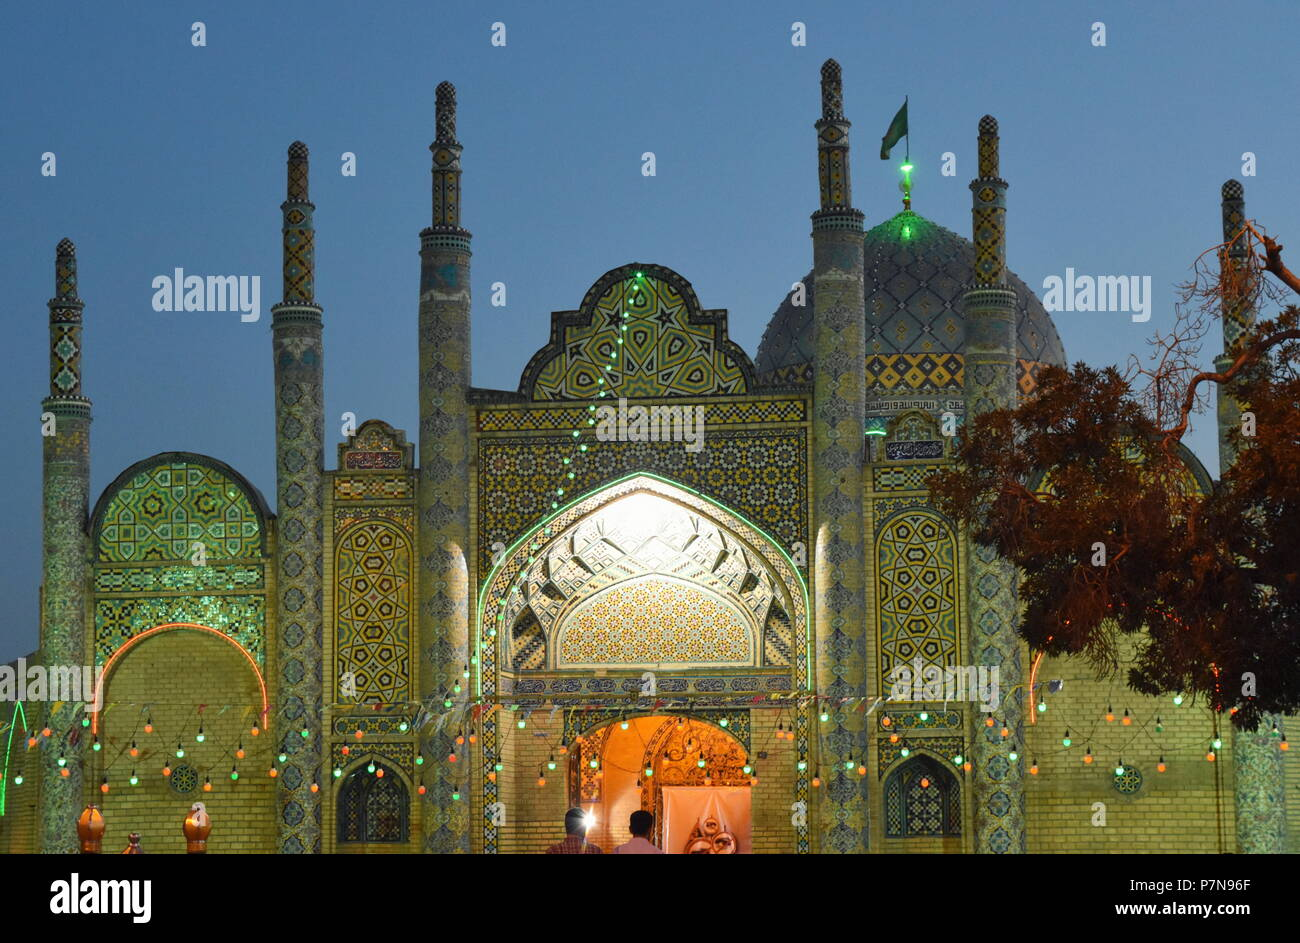 Beautiful Islamic and Iranian architecture of Shia shrine at dusk in Qazvin, Iran - multiple minarets and large dome - Stock Image